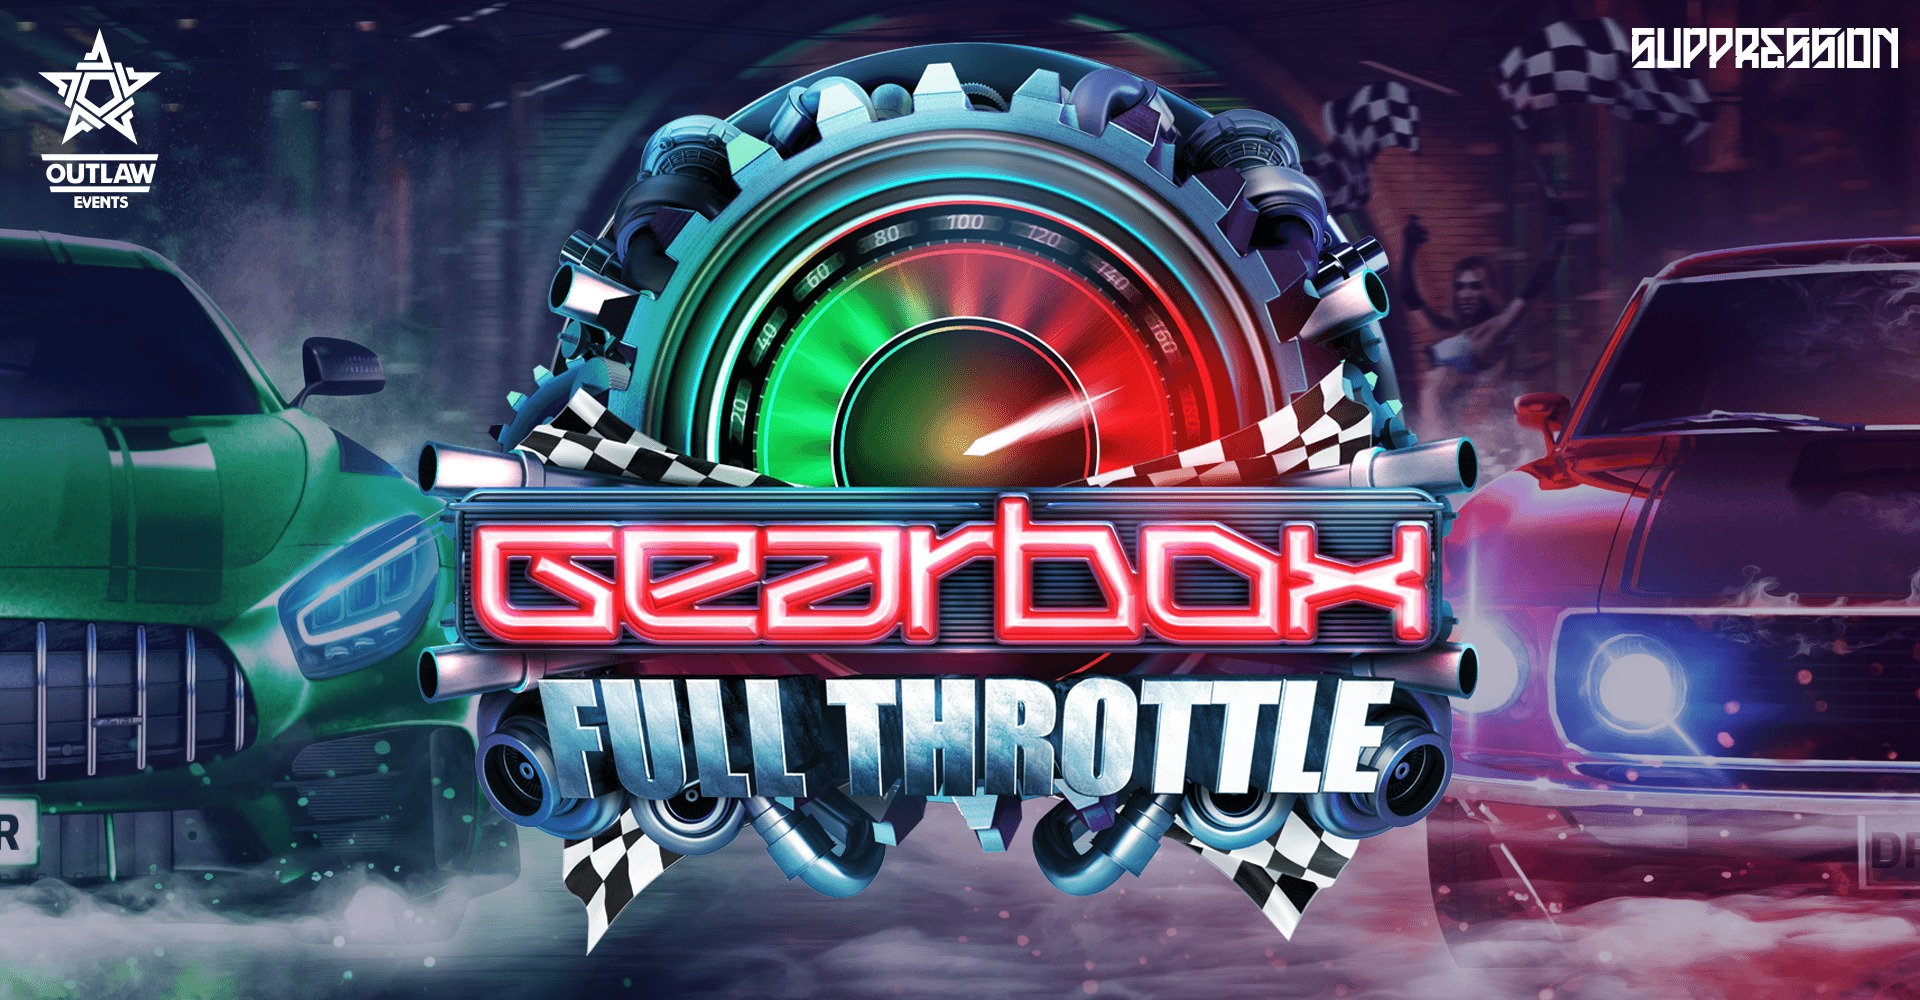 Gearbox - Full Throttle 2021